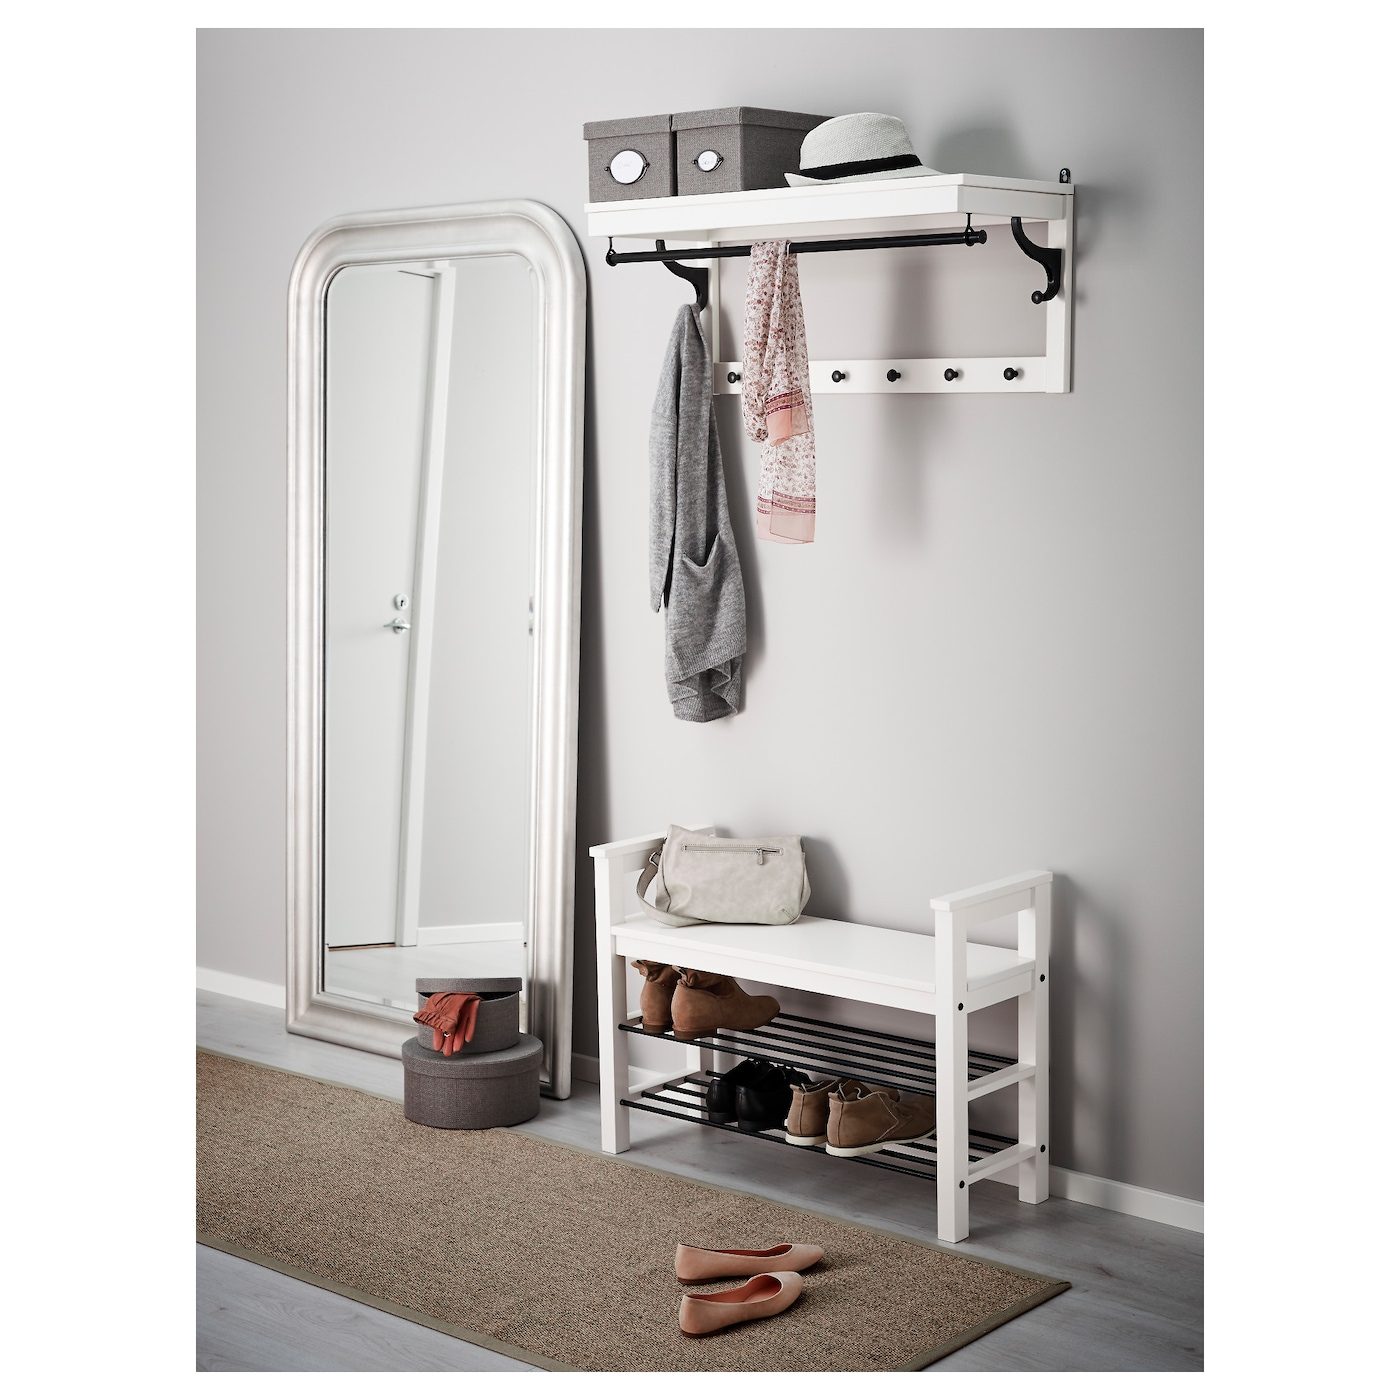 Hemnes hat rack white 85 cm ikea for Ikea comodino hemnes